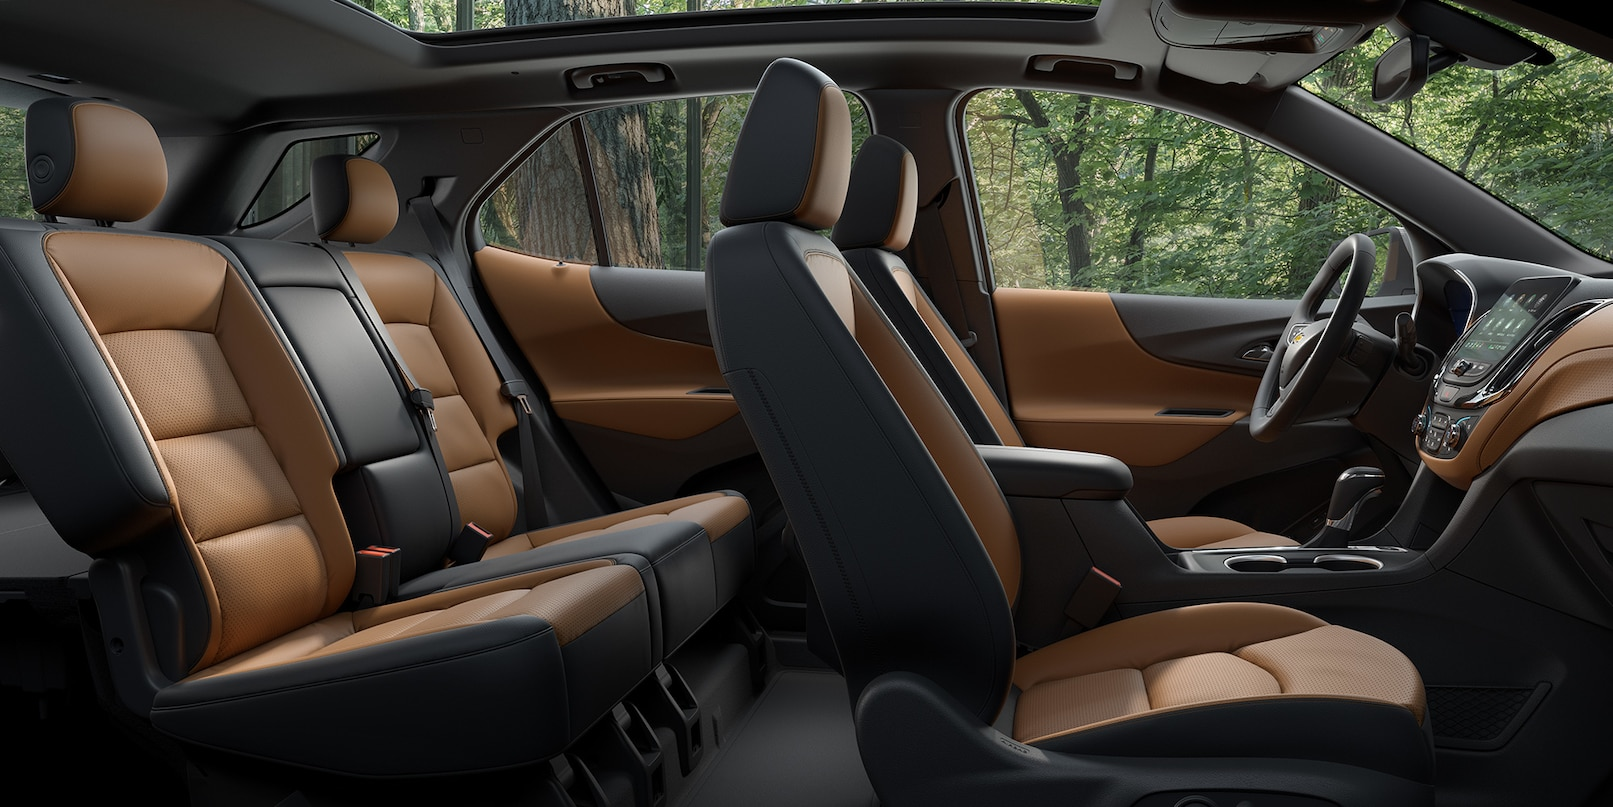 Spacious Cabin of the 2019 Equinox